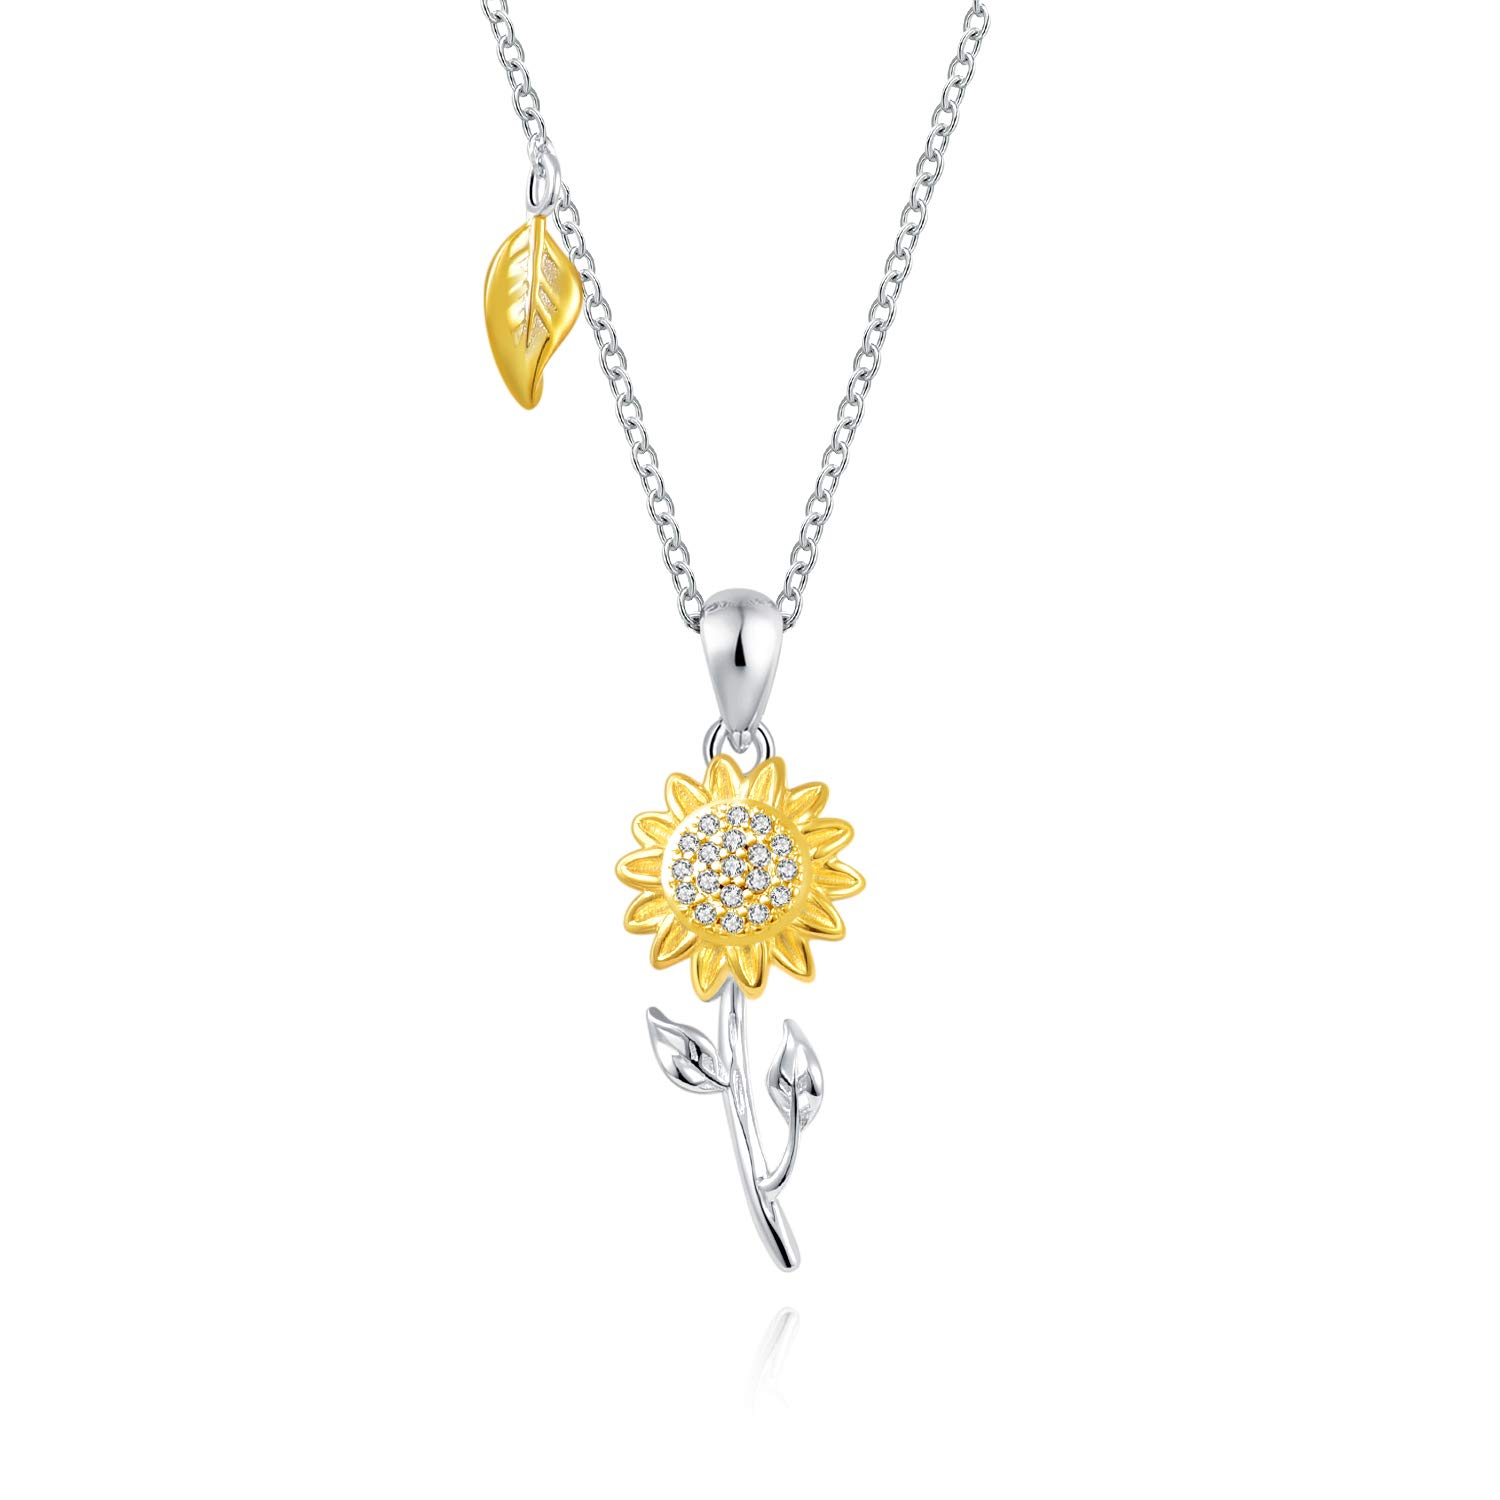 925 Sterling Silver Heart Sunflower Necklace Gold You are my Sunshine Pendant Jewelry Gift for Girlfriend Mom Daughter Sister